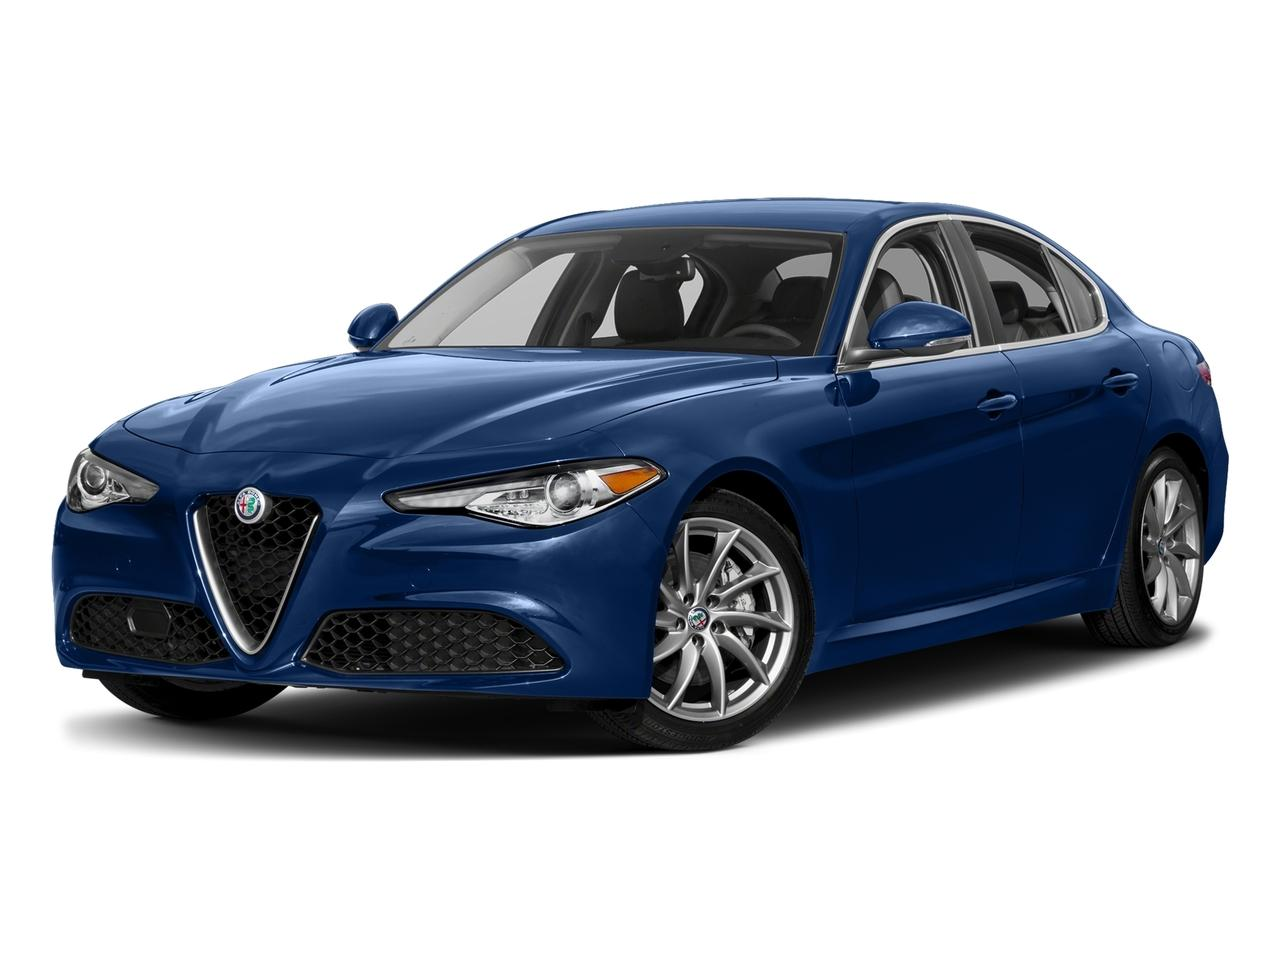 2017 Alfa Romeo Giulia Vehicle Photo in Willow Grove, PA 19090